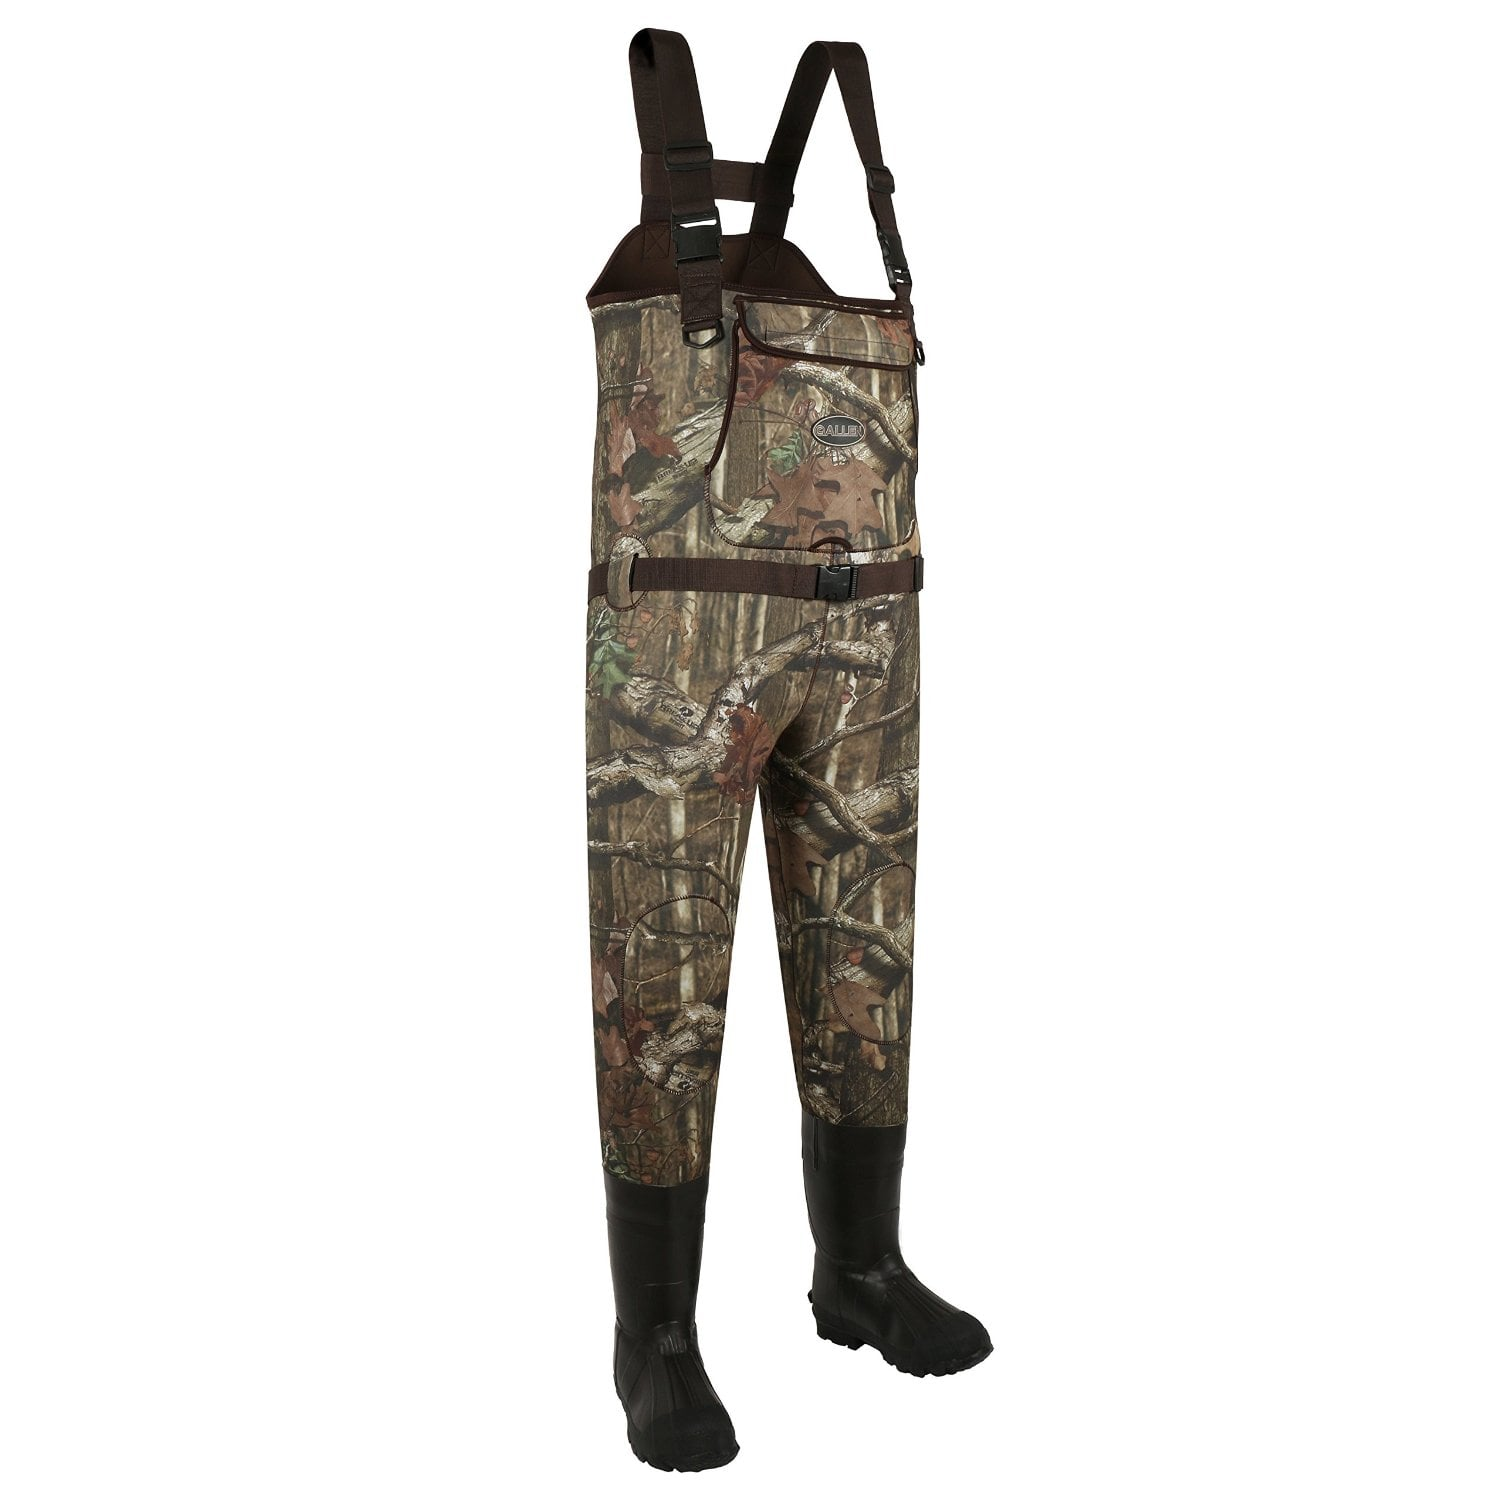 Best waders for duck hunting and fishing reviews of 2017 for Fishing waders reviews